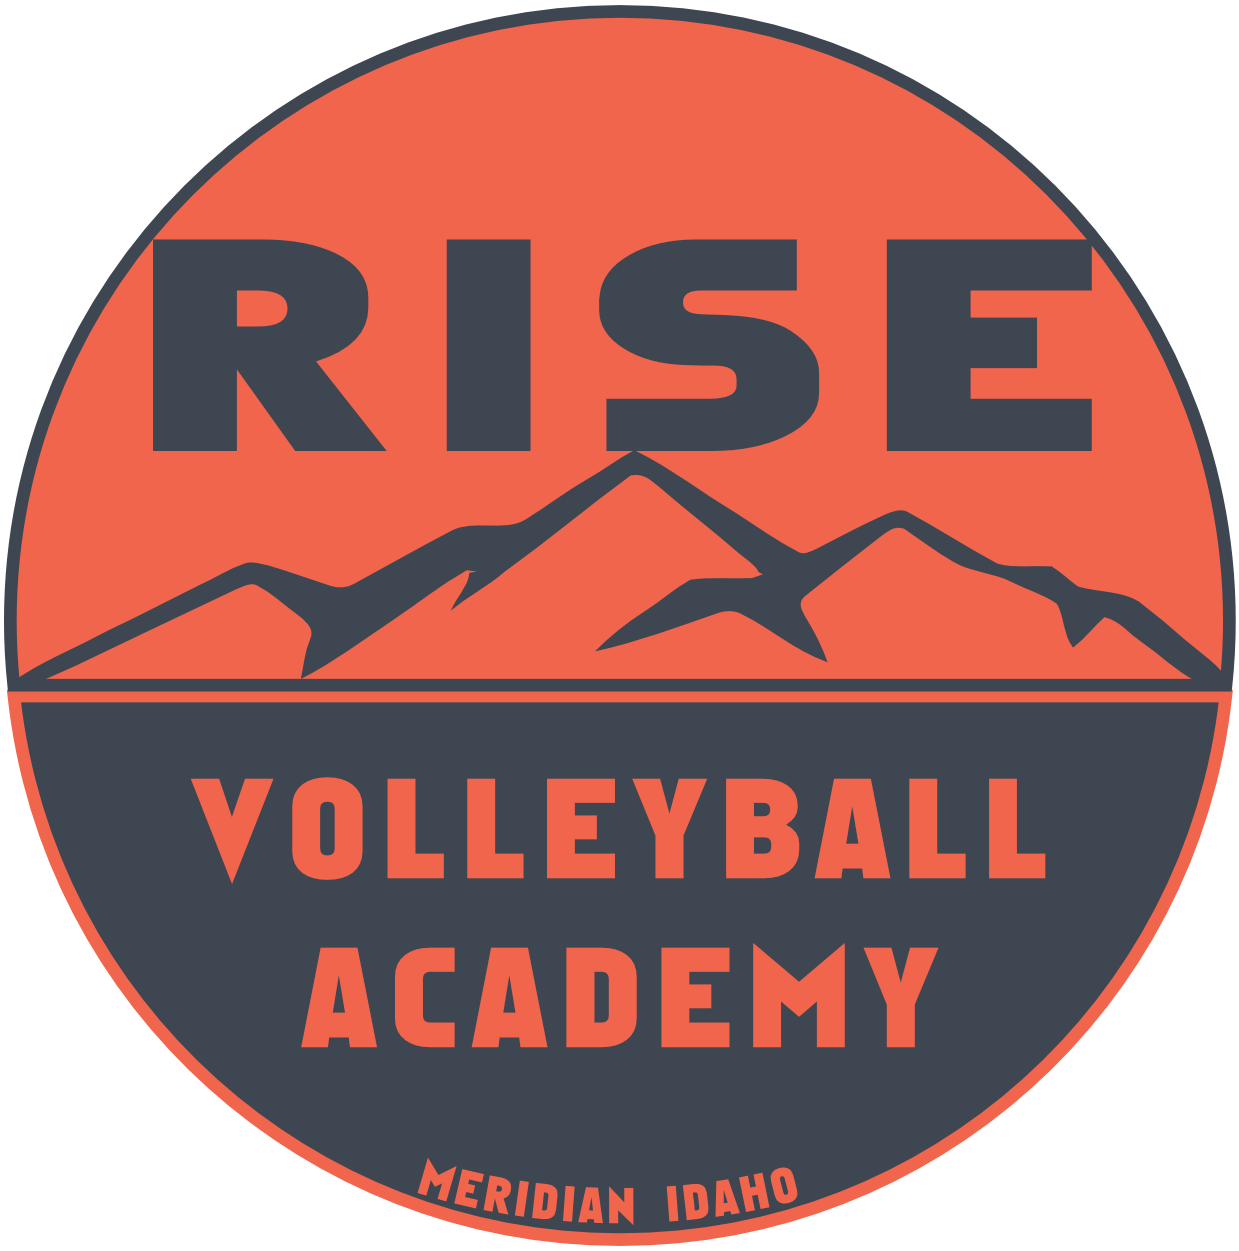 Rise Volleyball Academy primary image